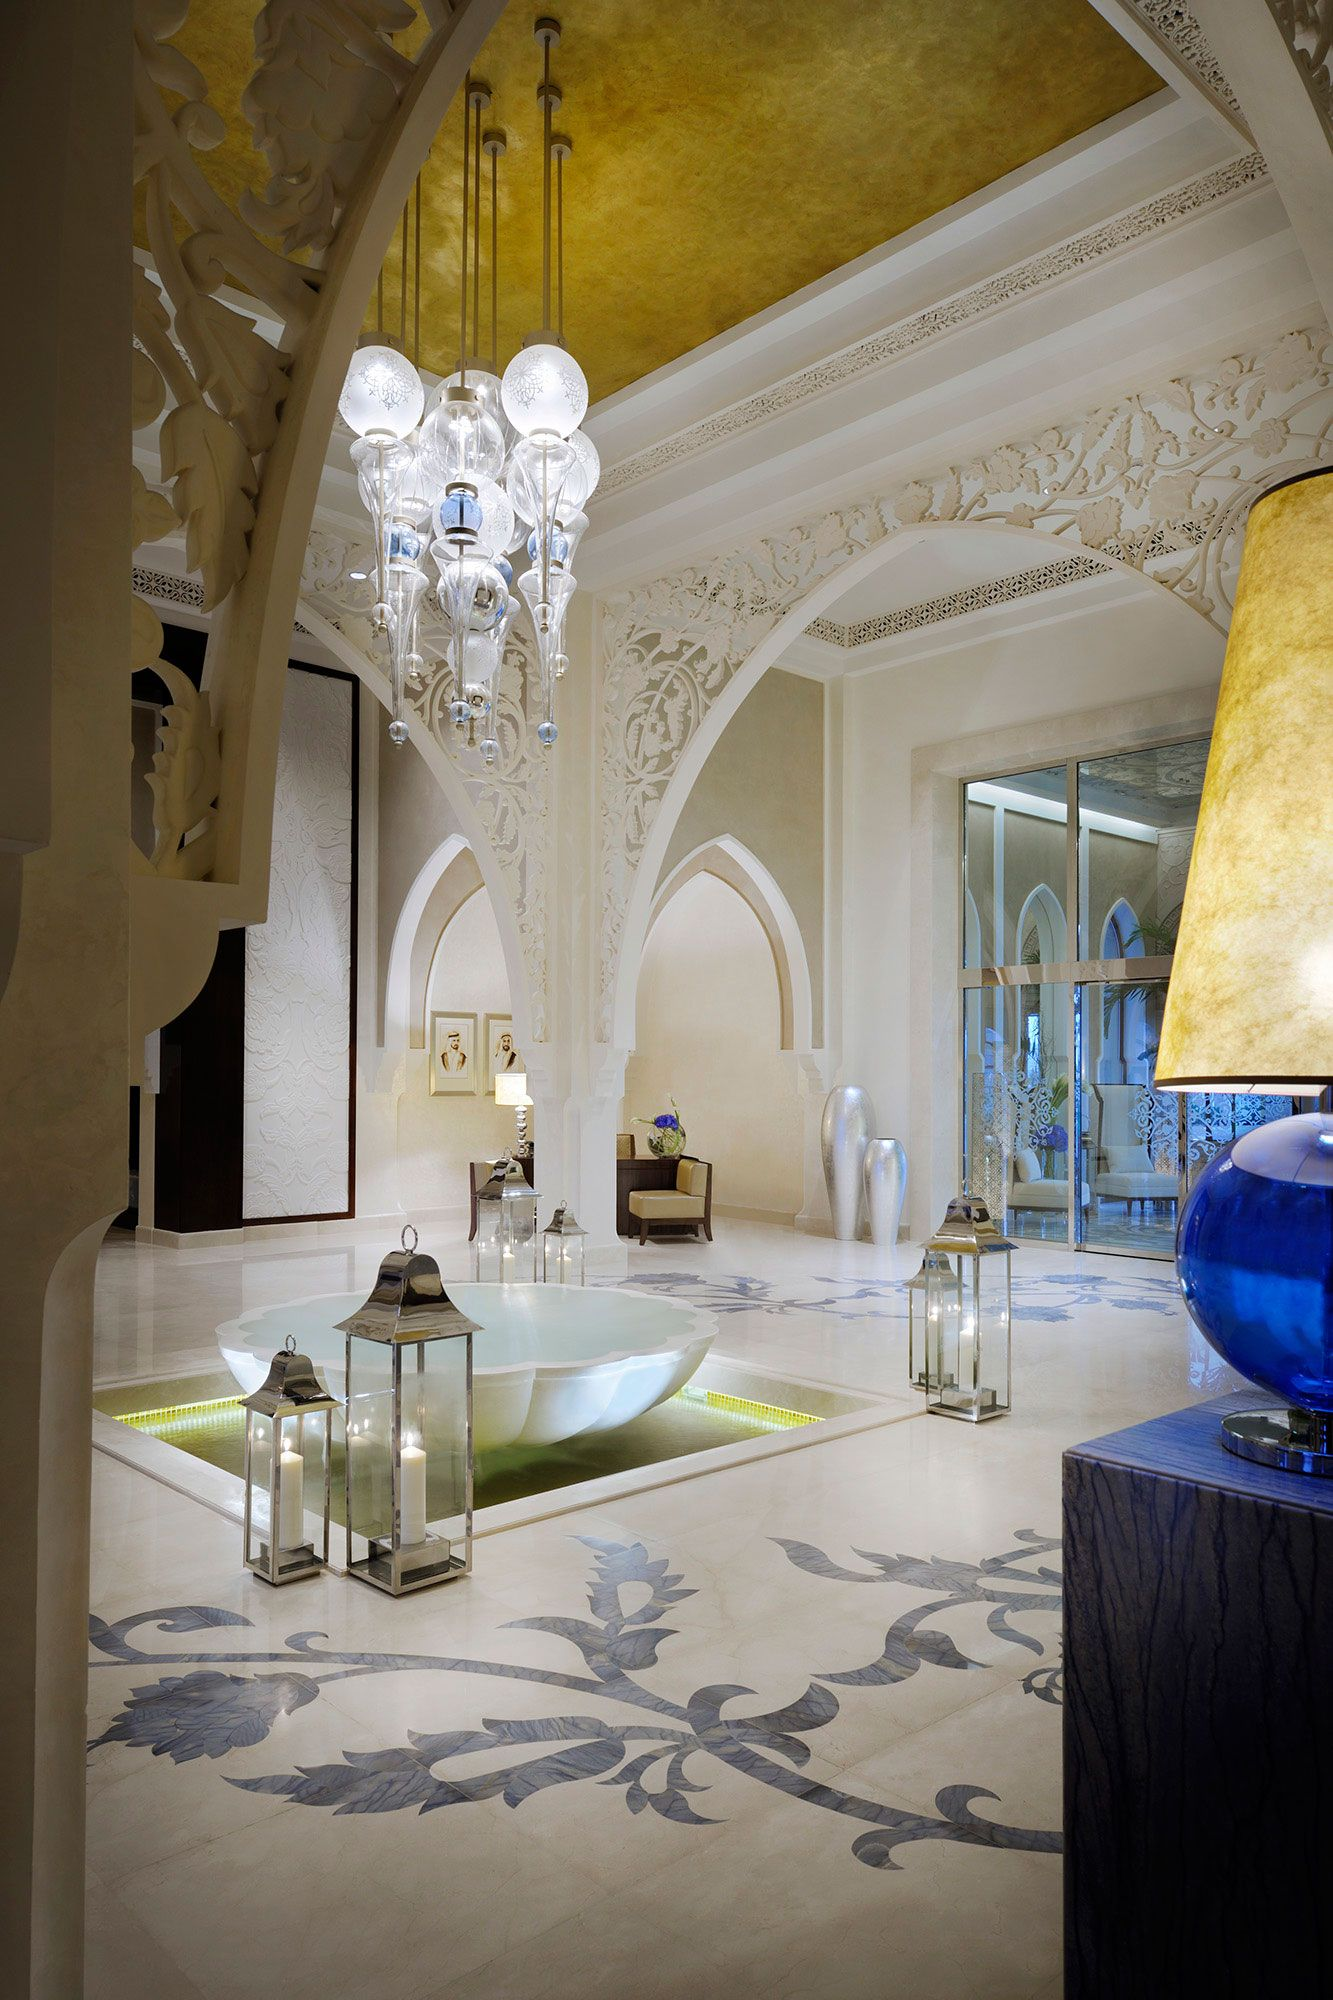 The One Only The Palm Is A Stunning Hotel Located In Dubai United Arab Emirate Spectacular Landscap Hotel Interior Design Moroccan Interiors Elegant Hotel